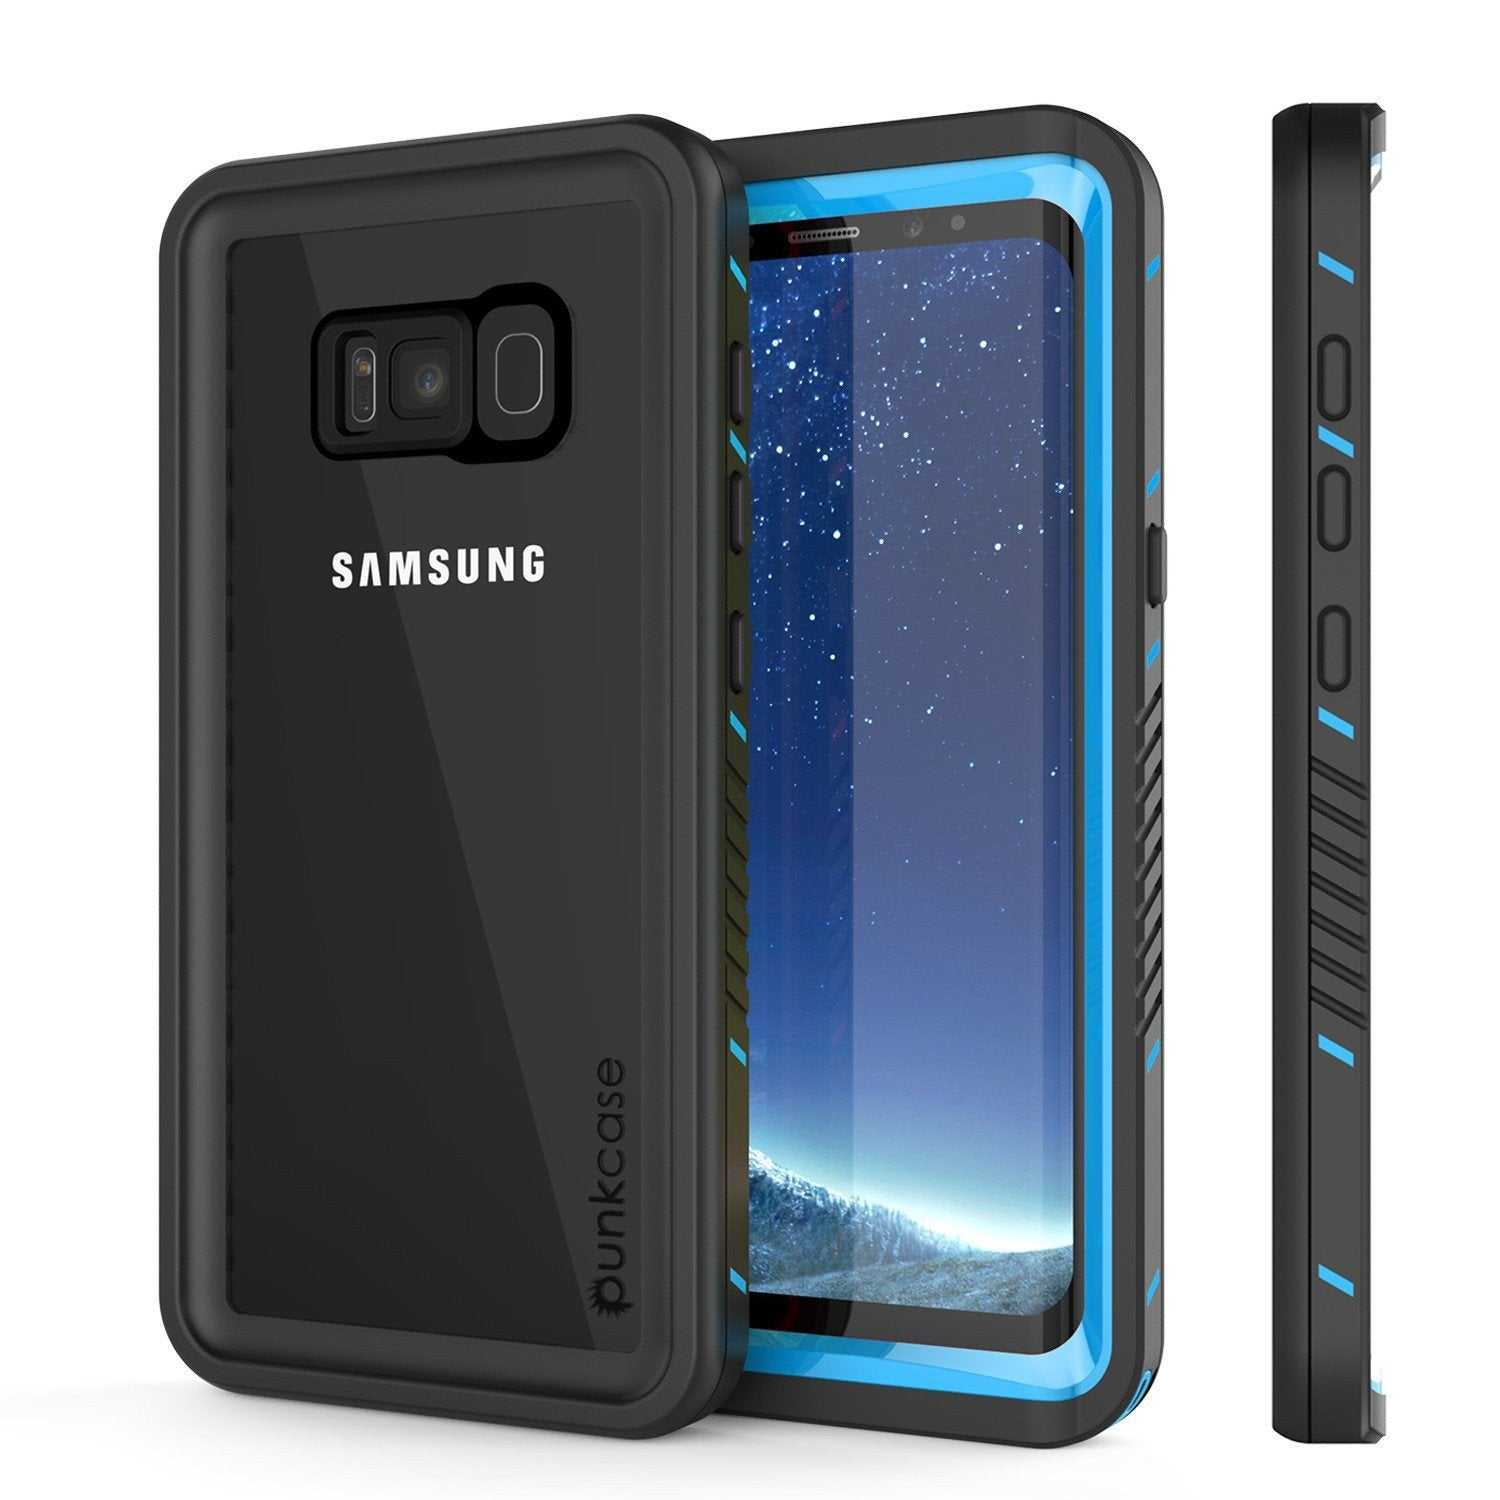 Galaxy S8 Case, Punkcase [Extreme Series] Armor Light Blue Cover